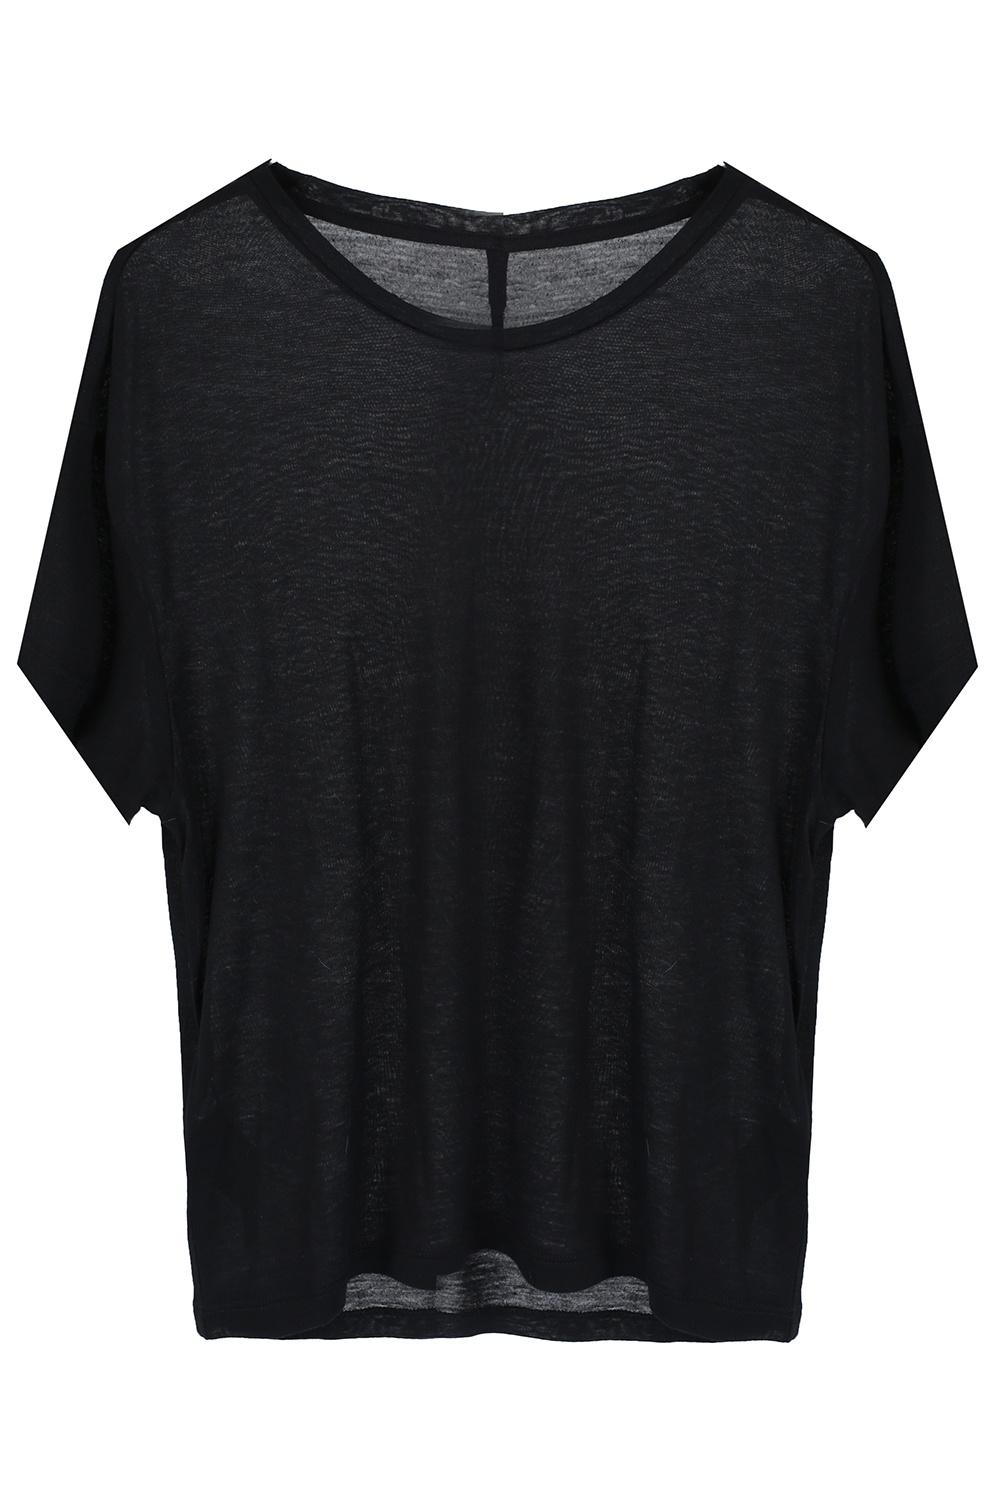 Unravel Project Sheer T-shirt